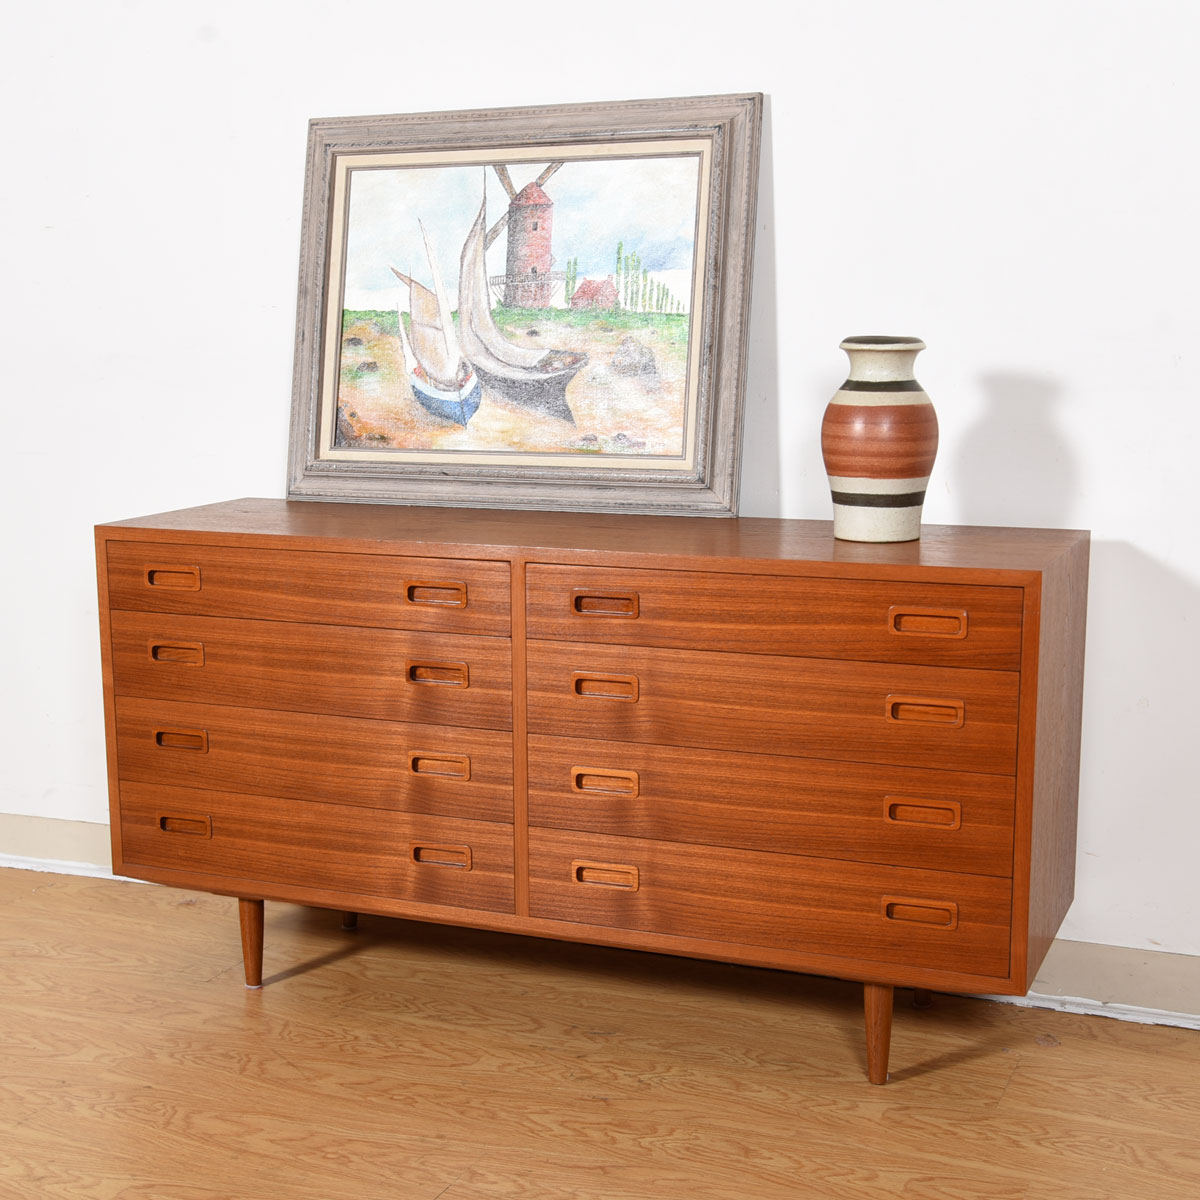 Danish Modern Compact Teak Double Chest of Drawers